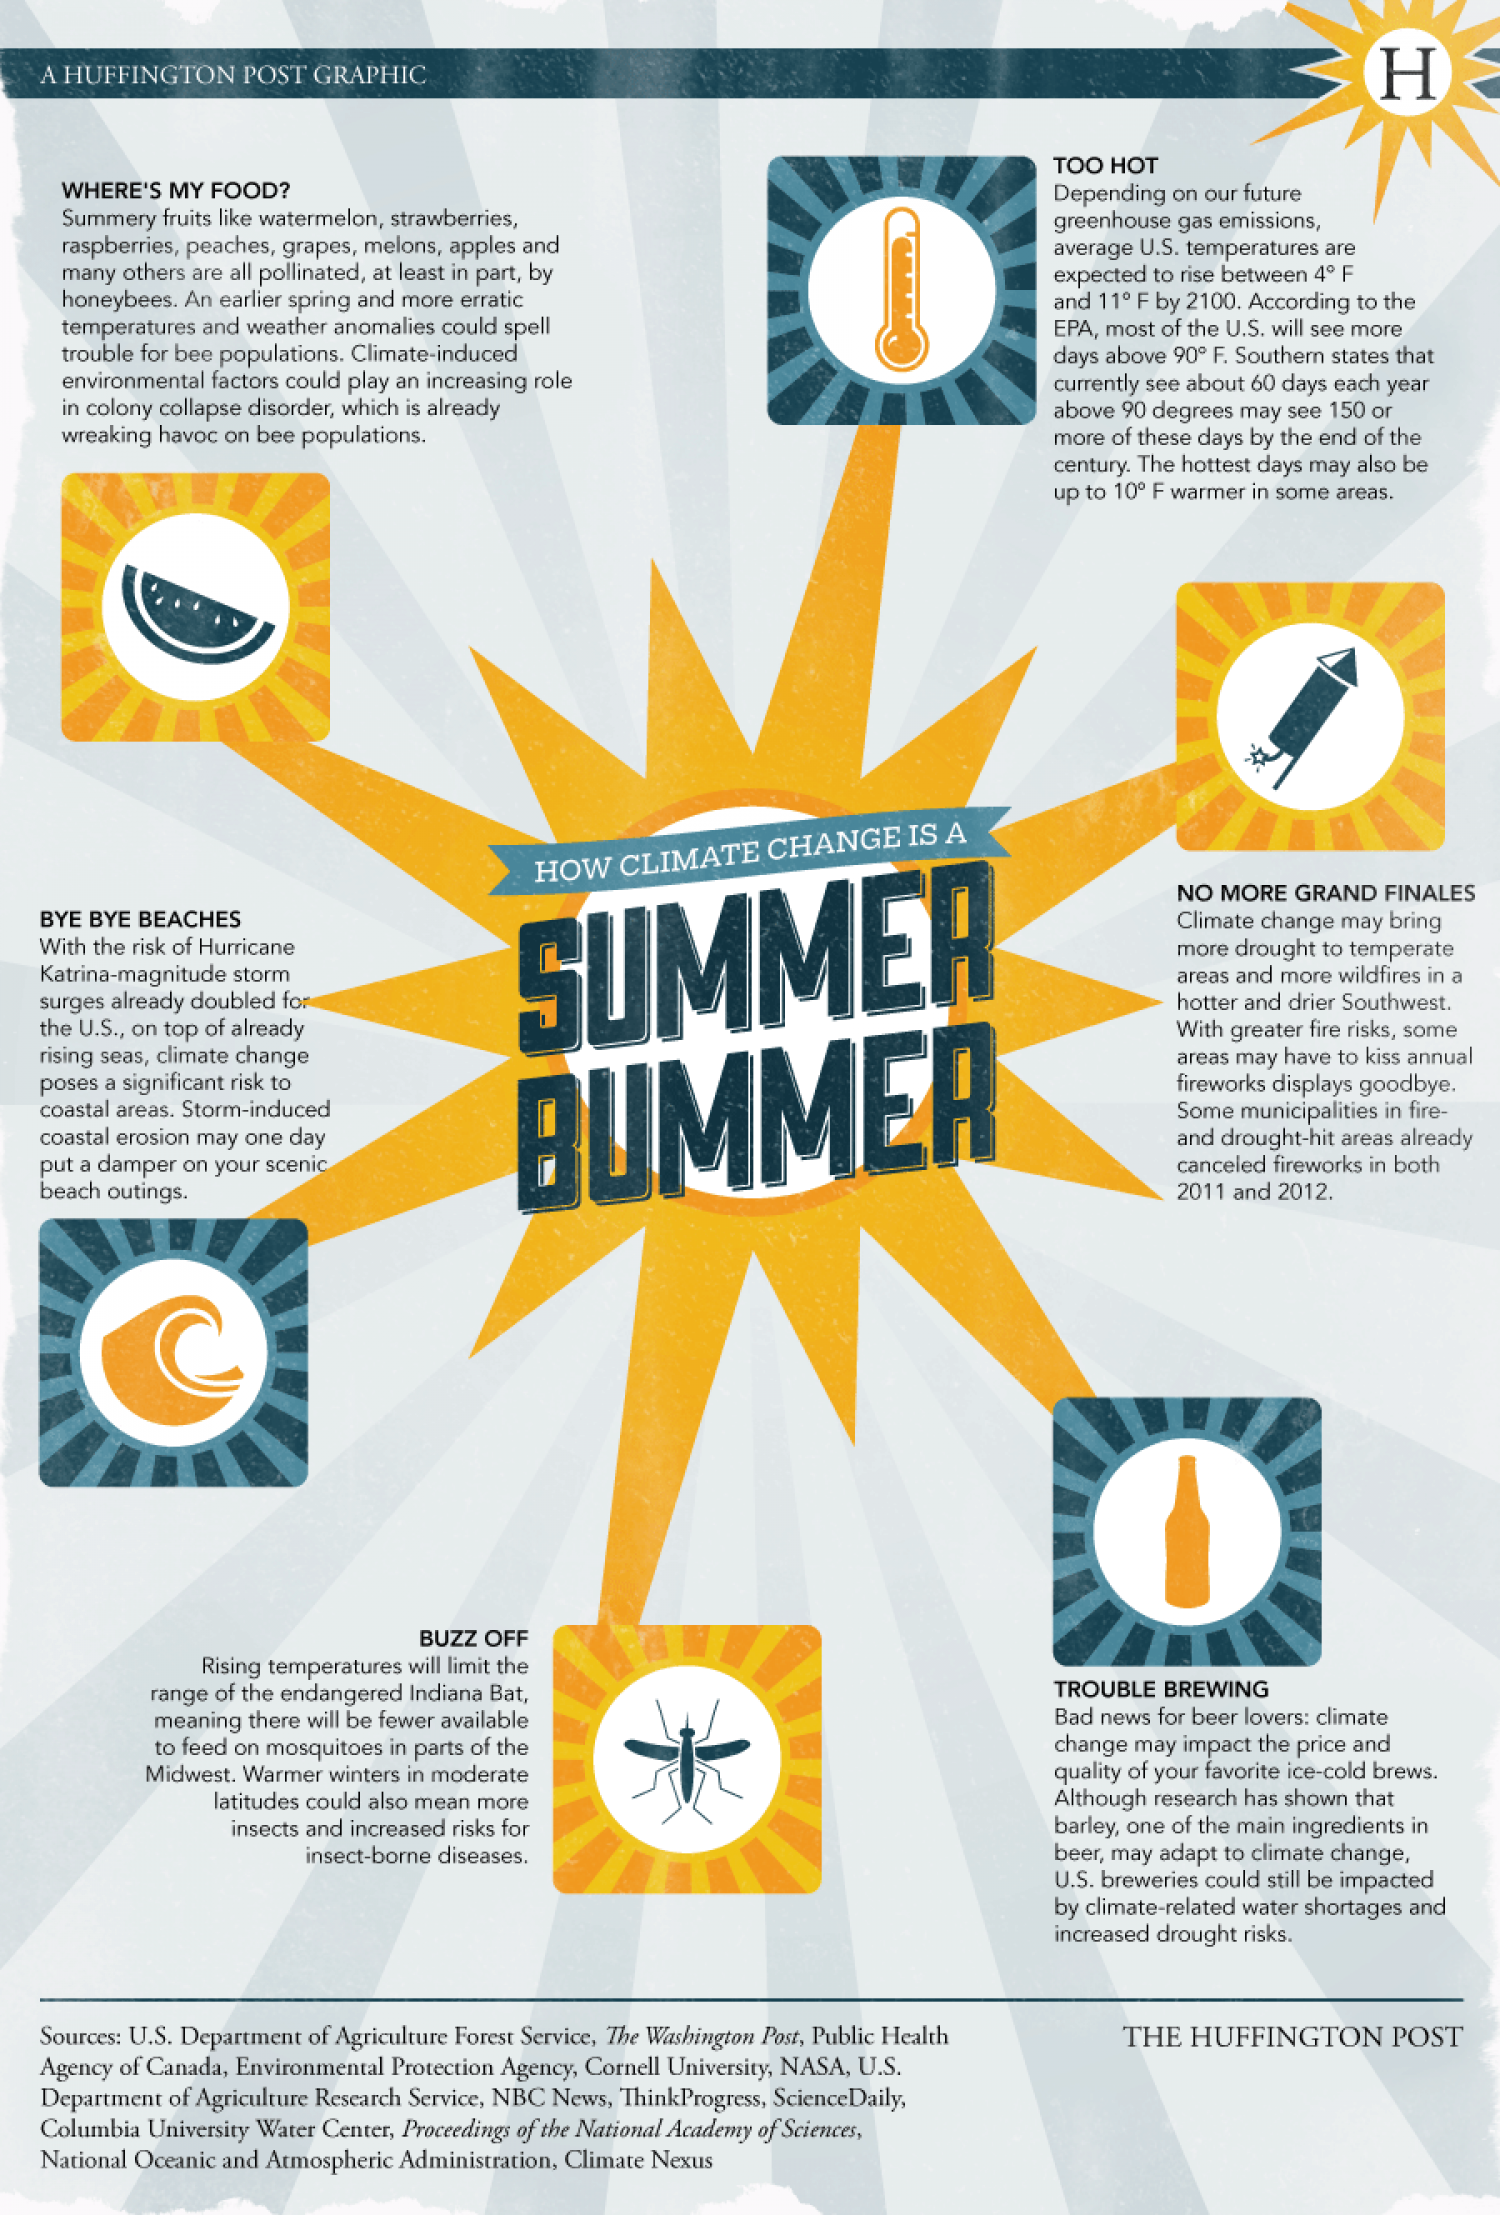 How Climate Change is a Summer Bummer Infographic